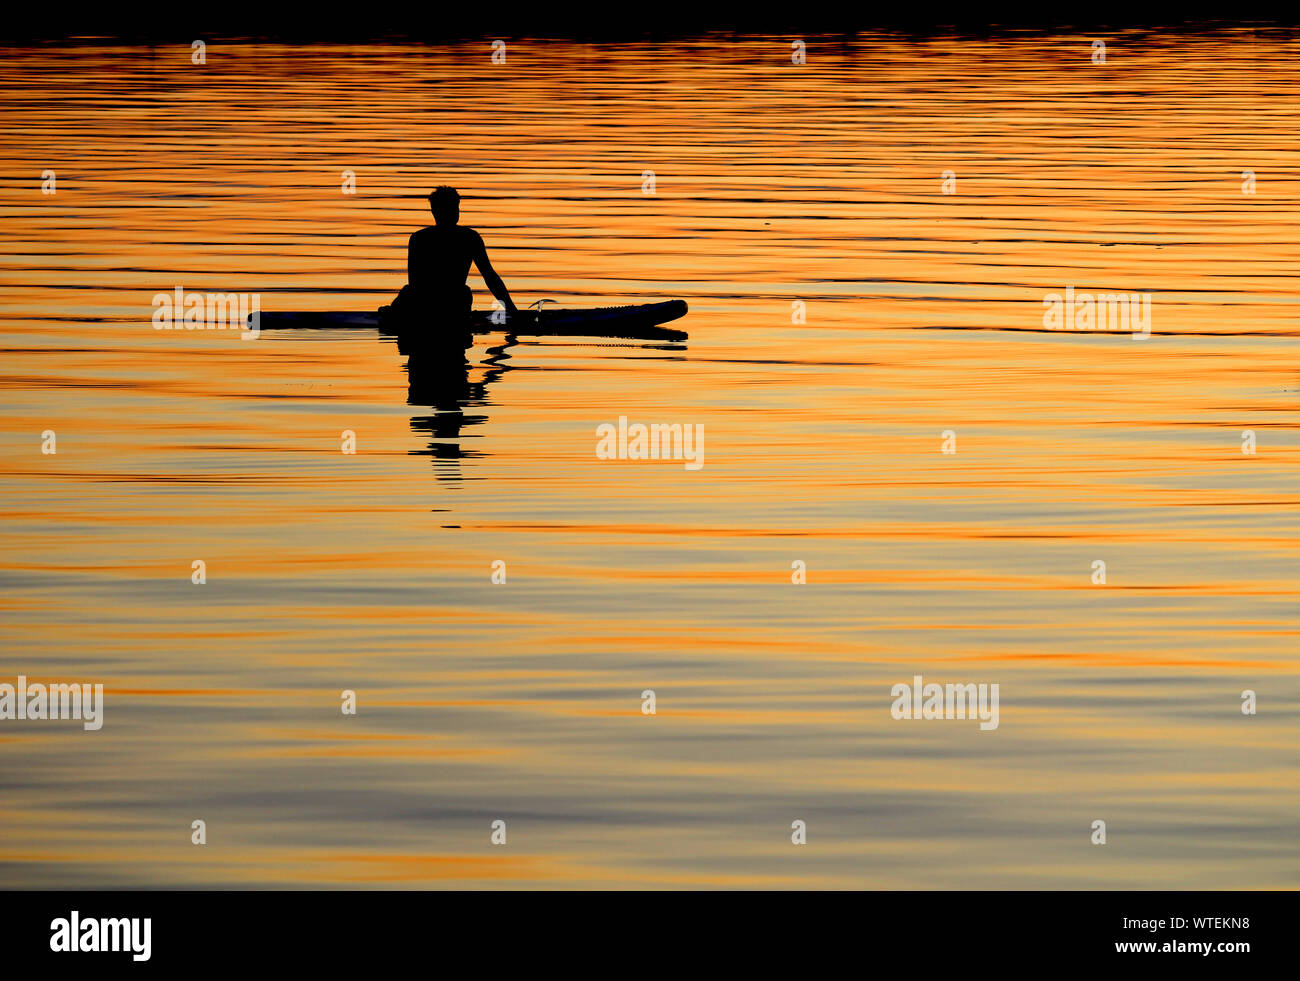 BAGENKOP, DENMARK, 17 JULY 2019: Silhouetted paddle boarder at peace, watching the colorful setting sun from his board on the sea. Relaxation, serene. Stock Photo